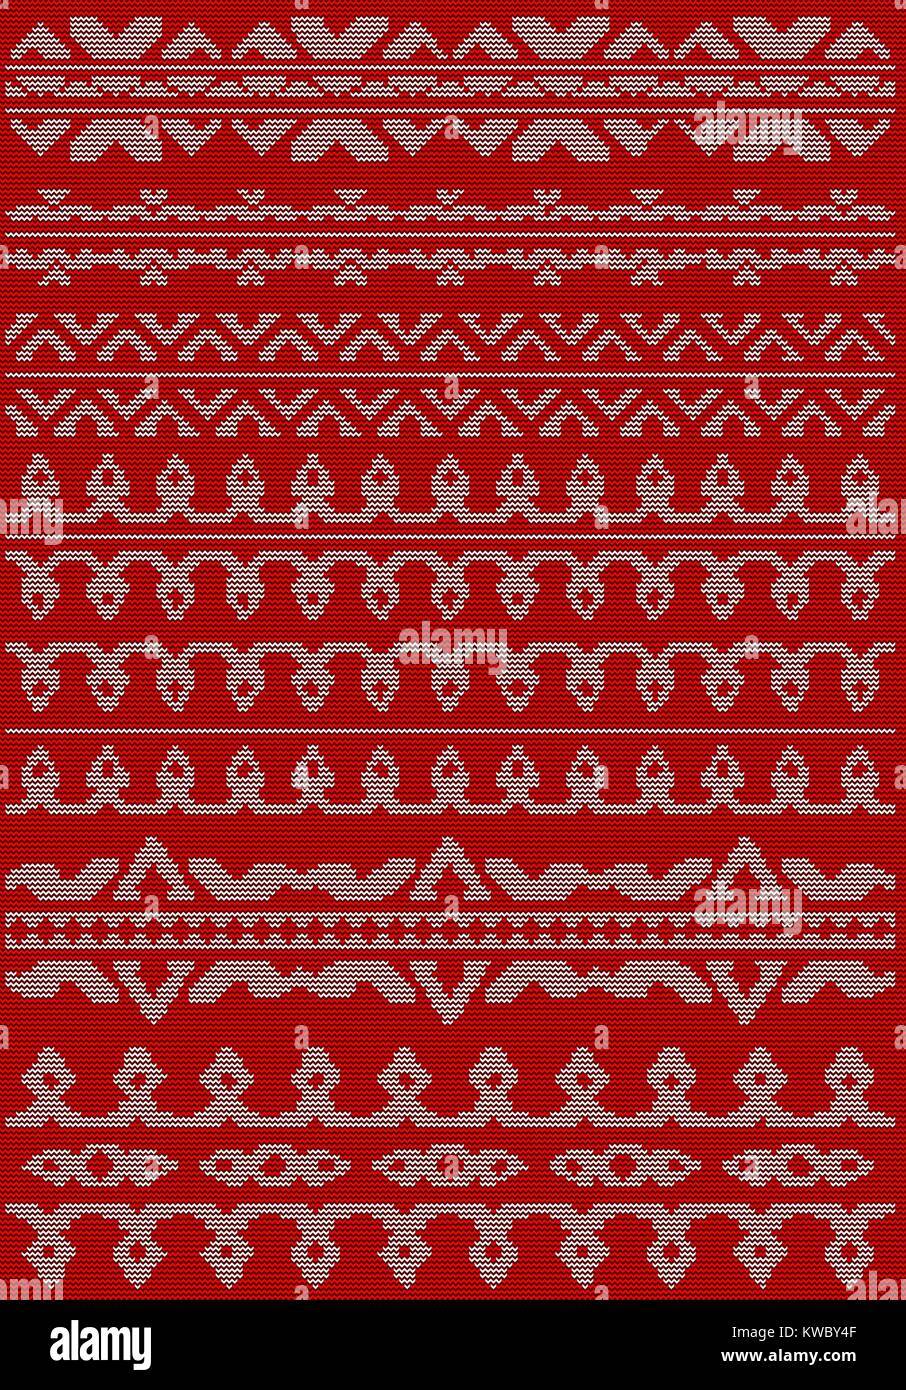 Knitting pattern ornate decorative lines. New year or Christmas sweater design. Wool knitted texture in red and - Stock Vector